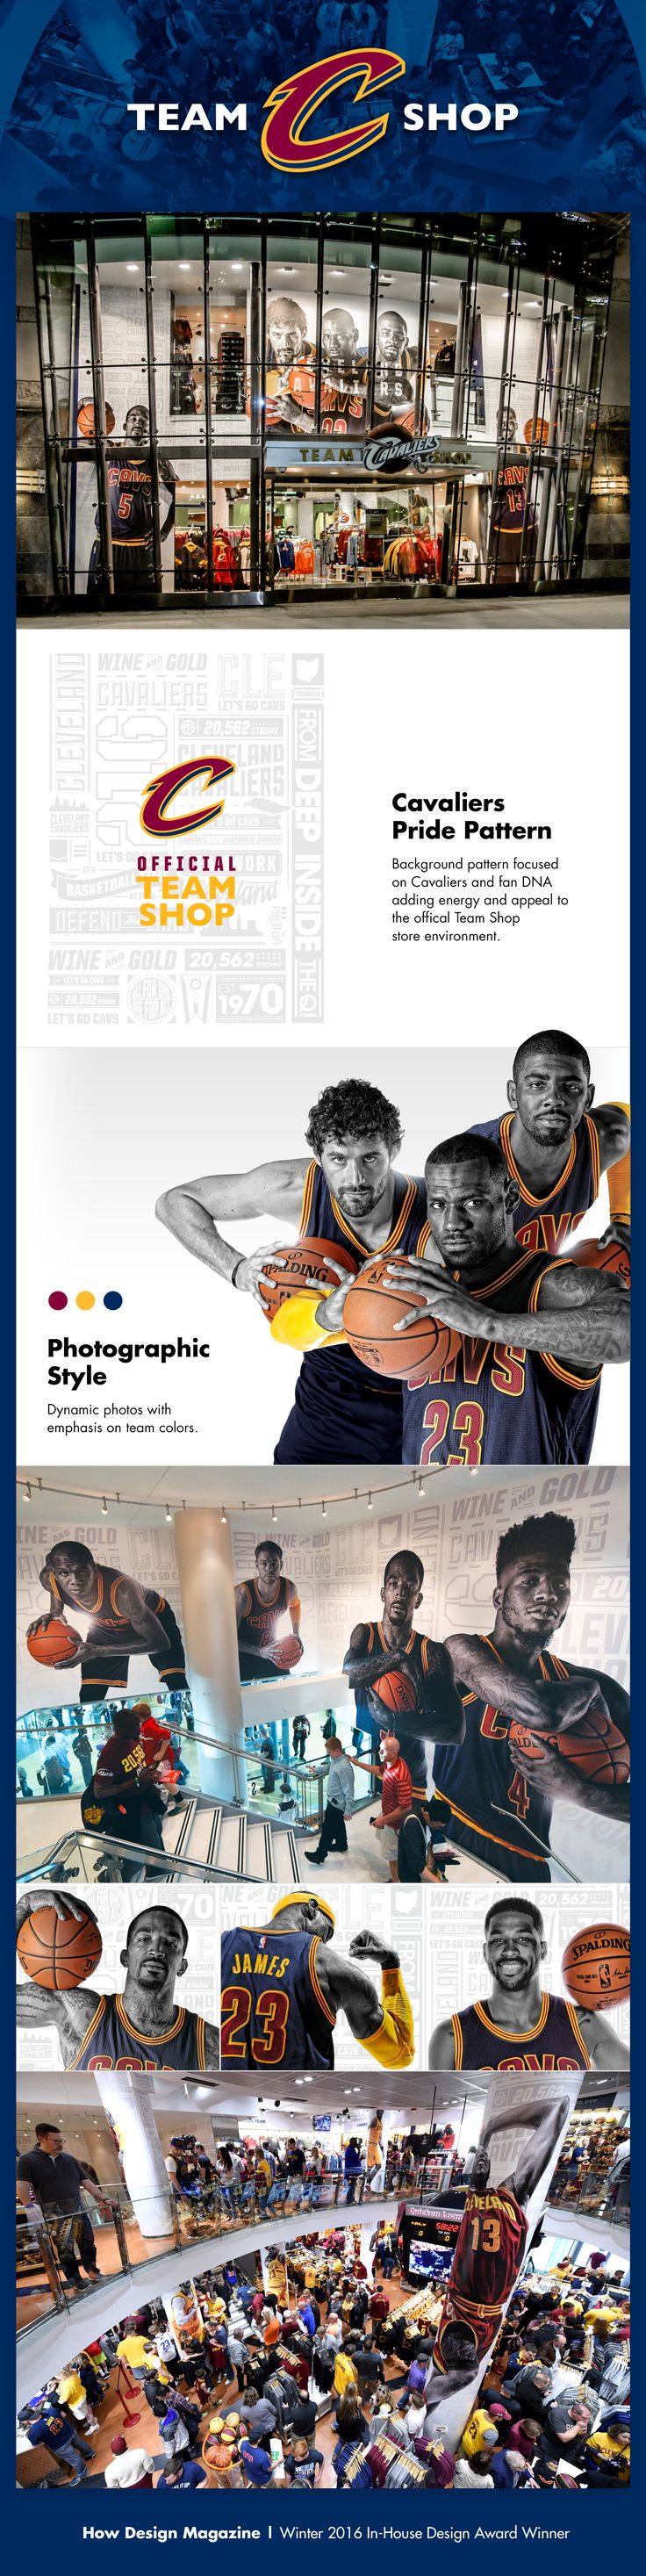 Cavaliers Team Shop Graphics on Behance